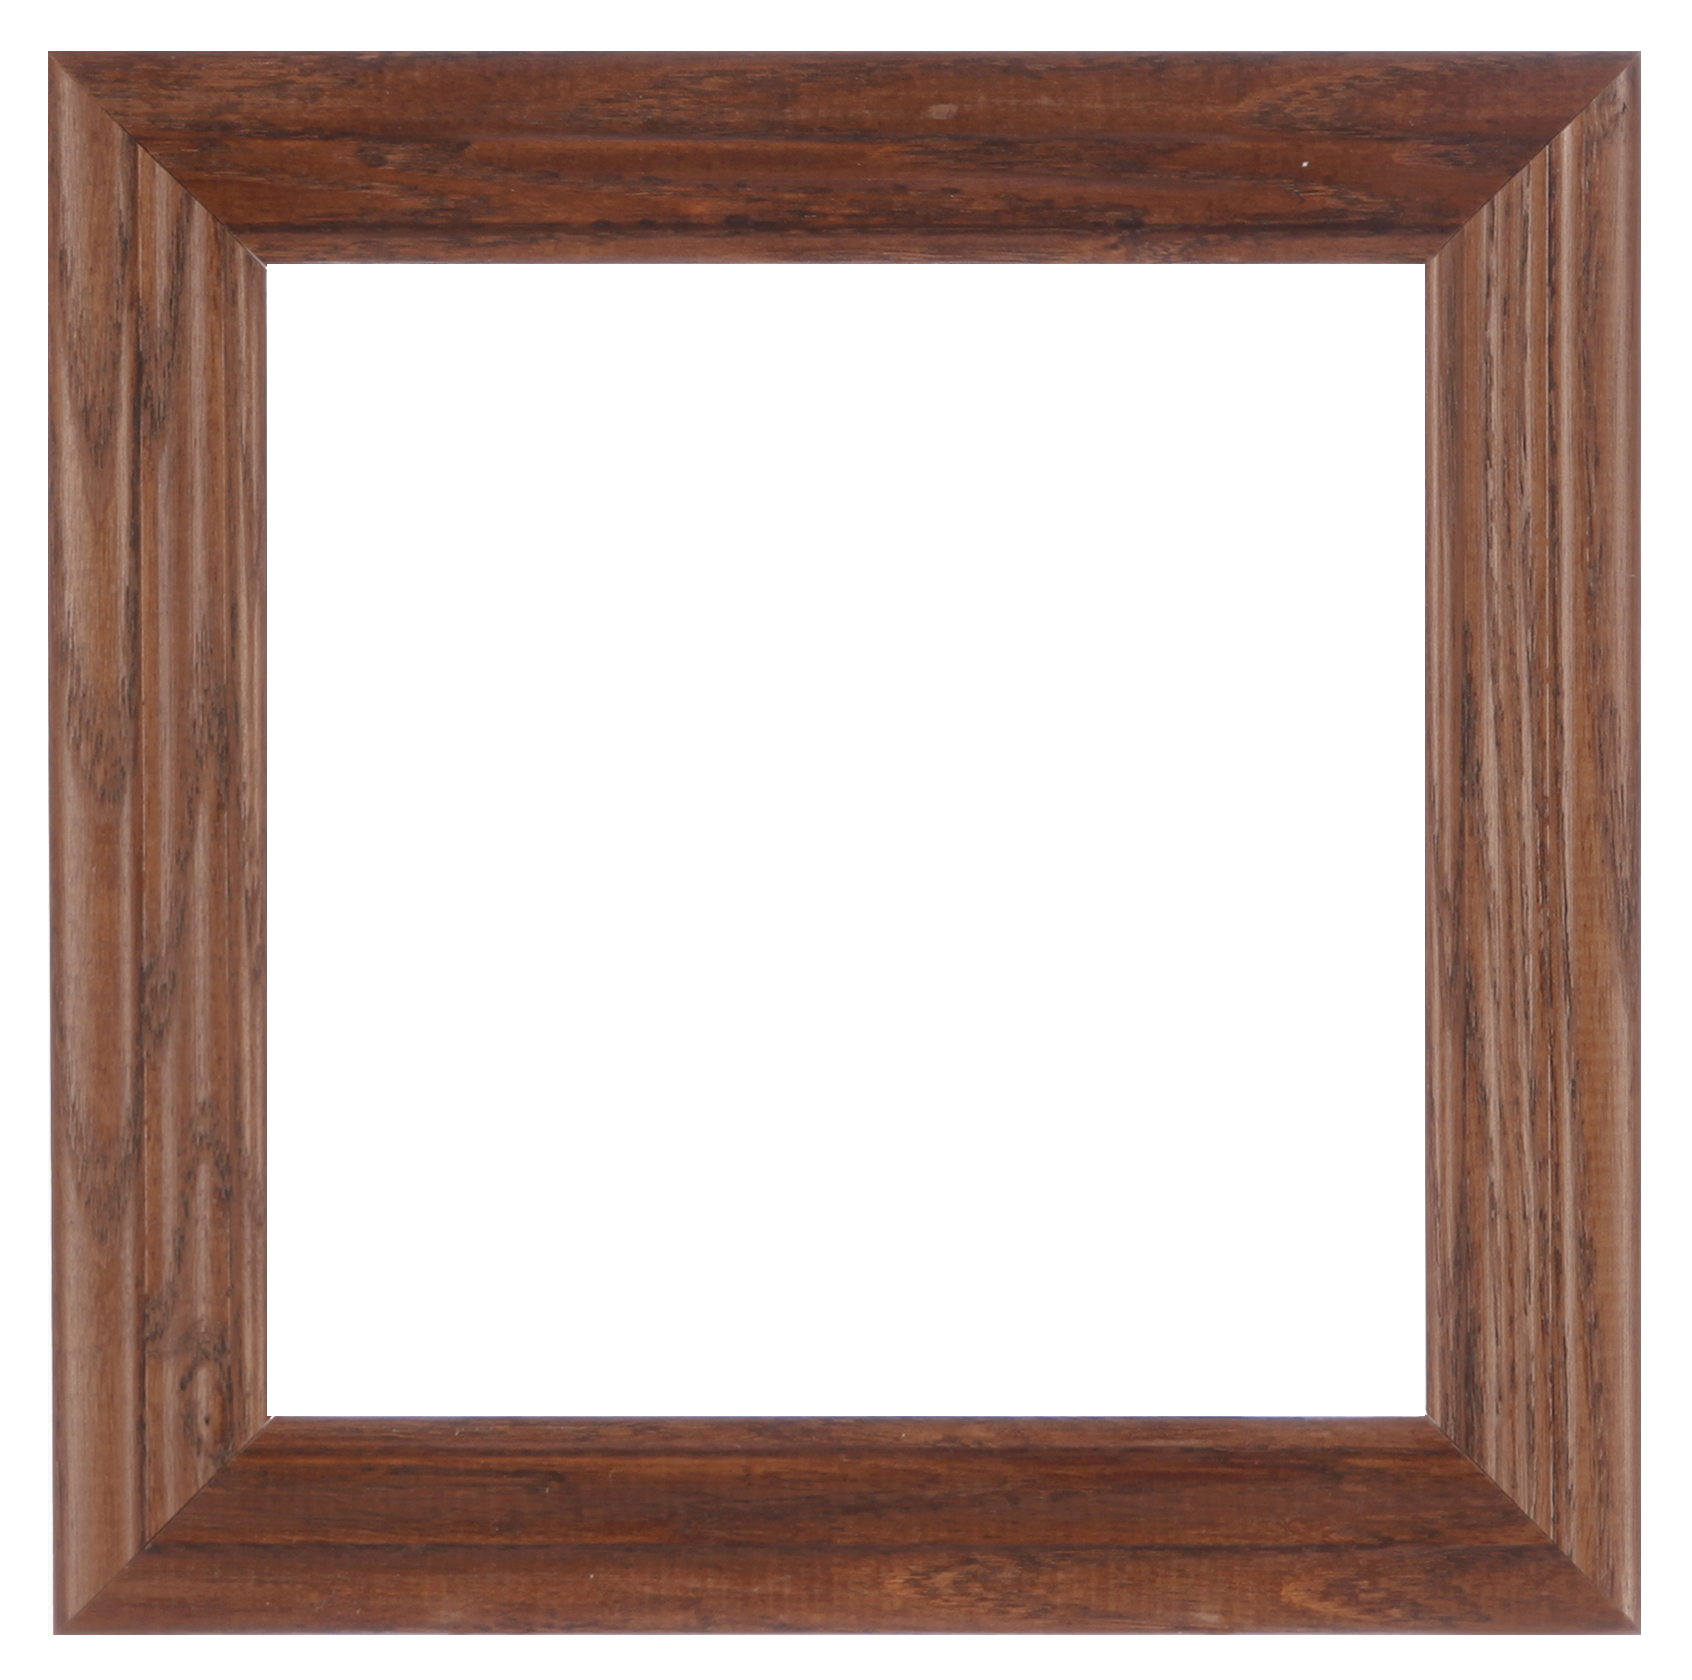 Dark Wood Picture Frames | www.imgkid.com - The Image Kid ...